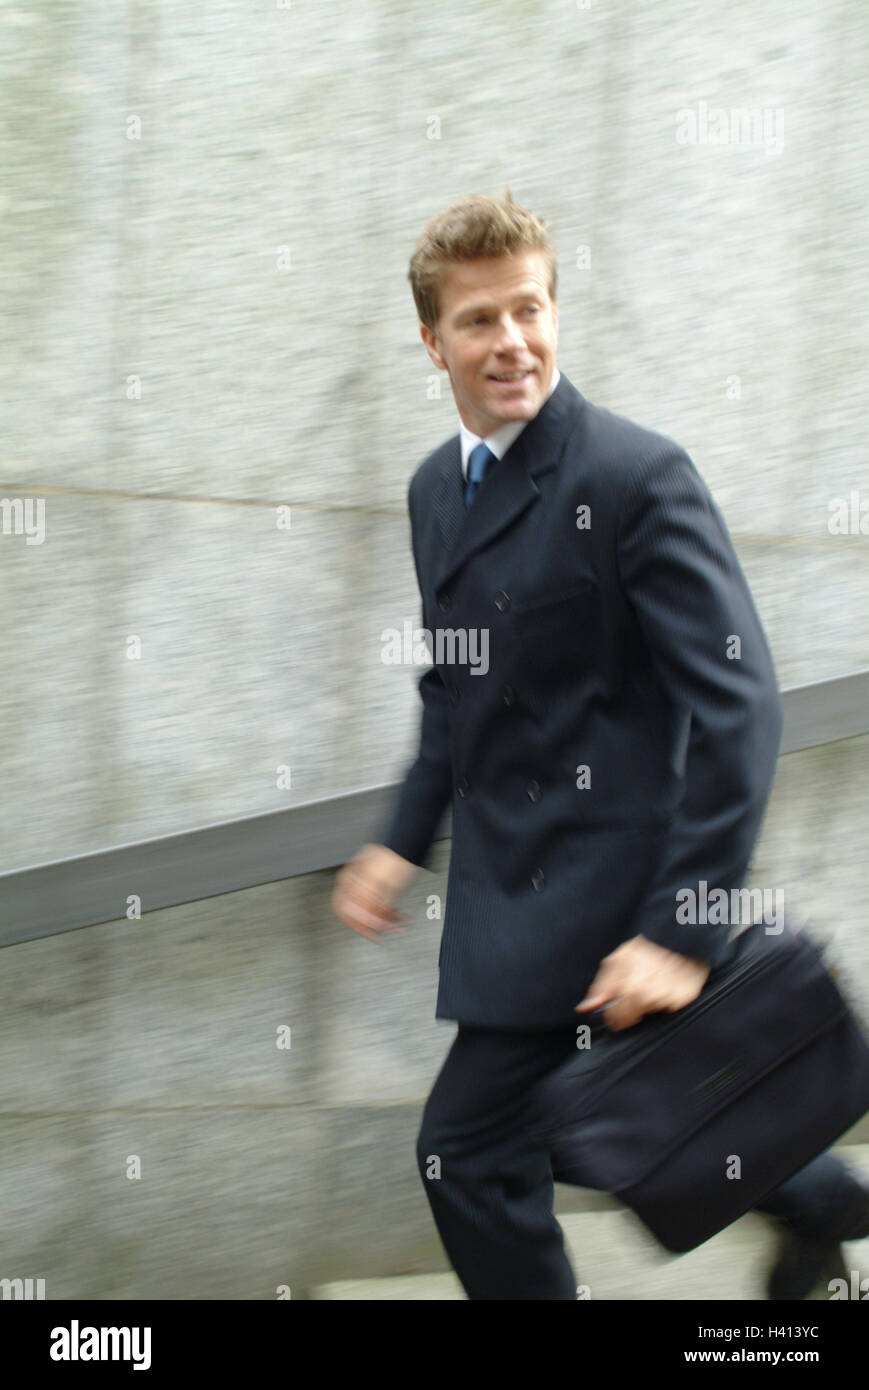 Pedestrian subway, businessman, briefcase, stairs, run, go down, blur town, underpass, steps, man, manager, 30-40 Stock Photo